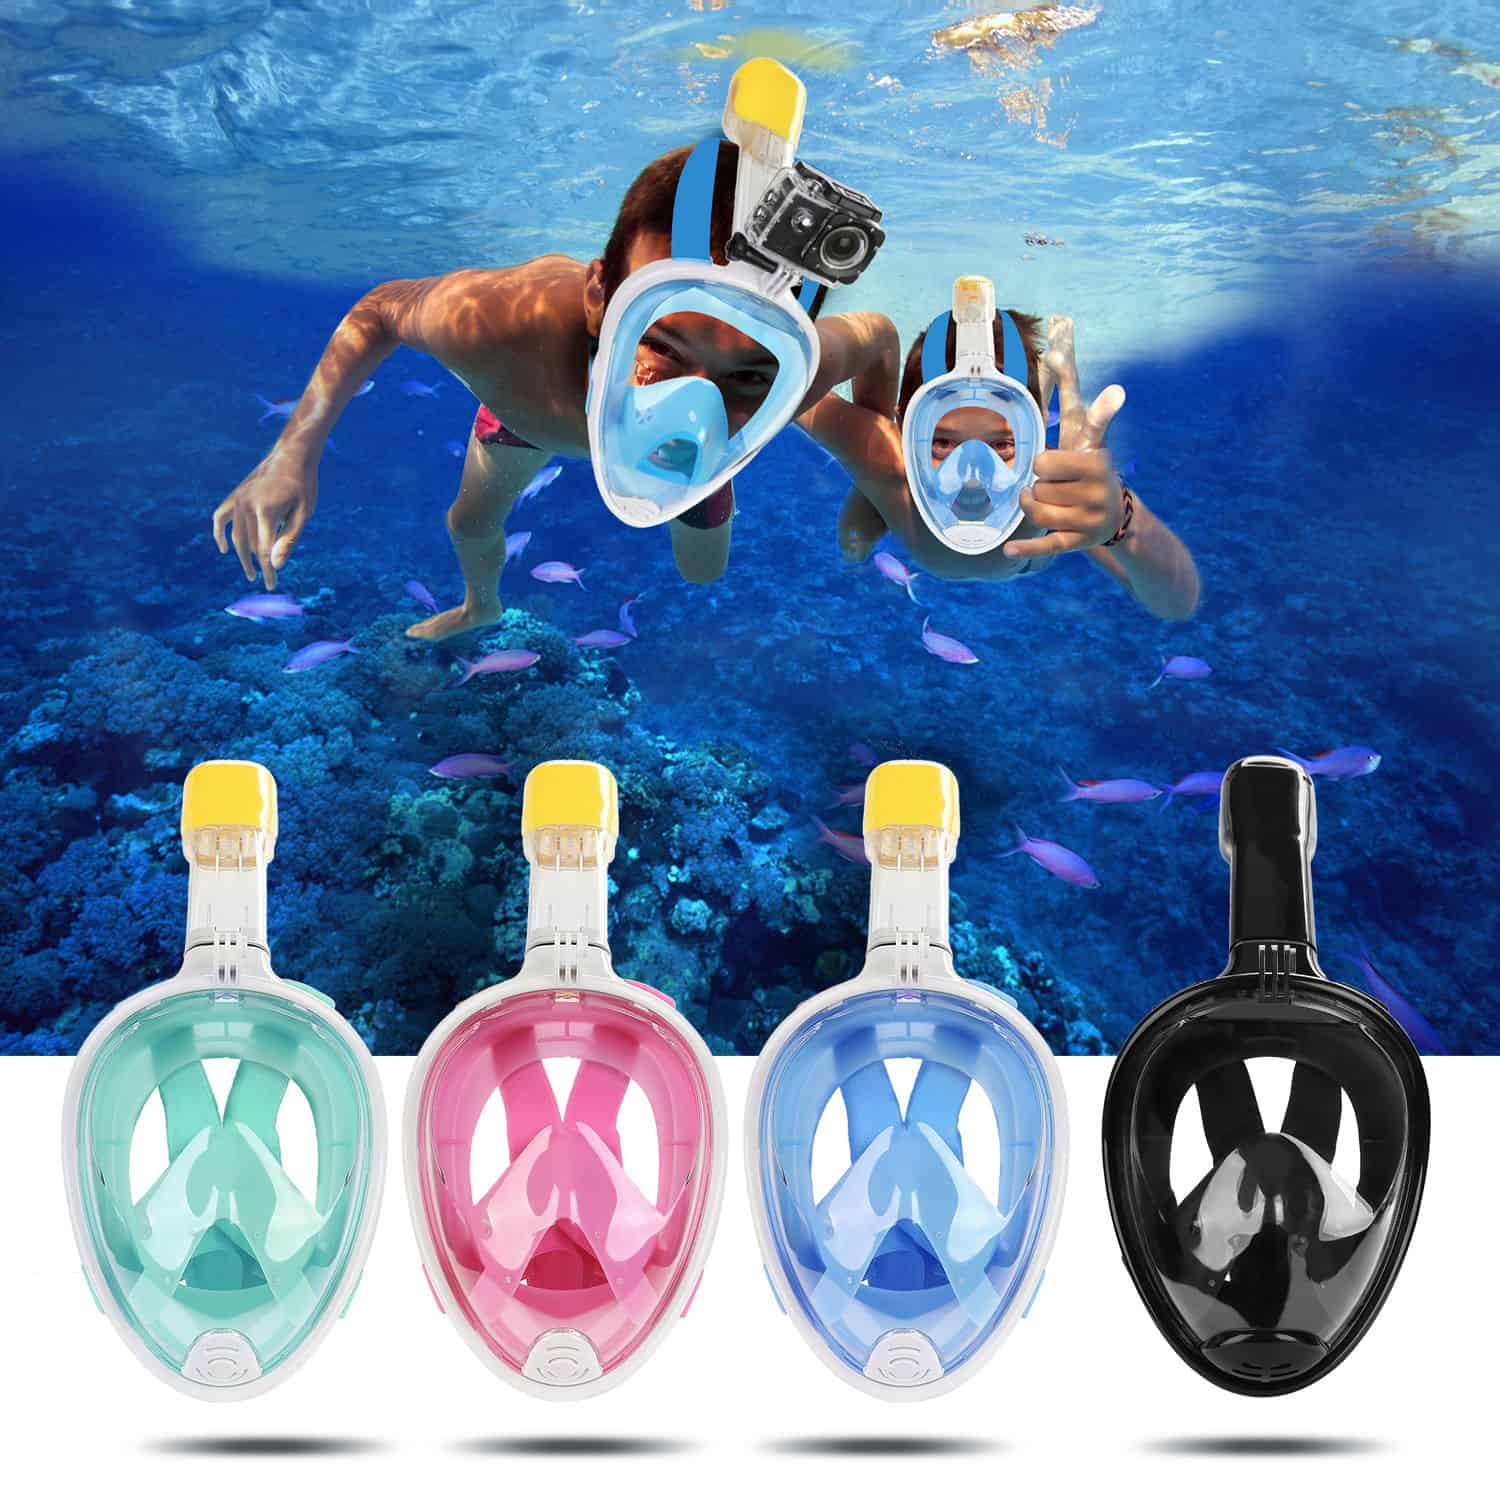 VianPool swimming-goggles-snorkeling-full-face-diving-mask-s-l-water-sports-for-gopro-e0617d2b5d4a9d1737ab1b942be0ef82